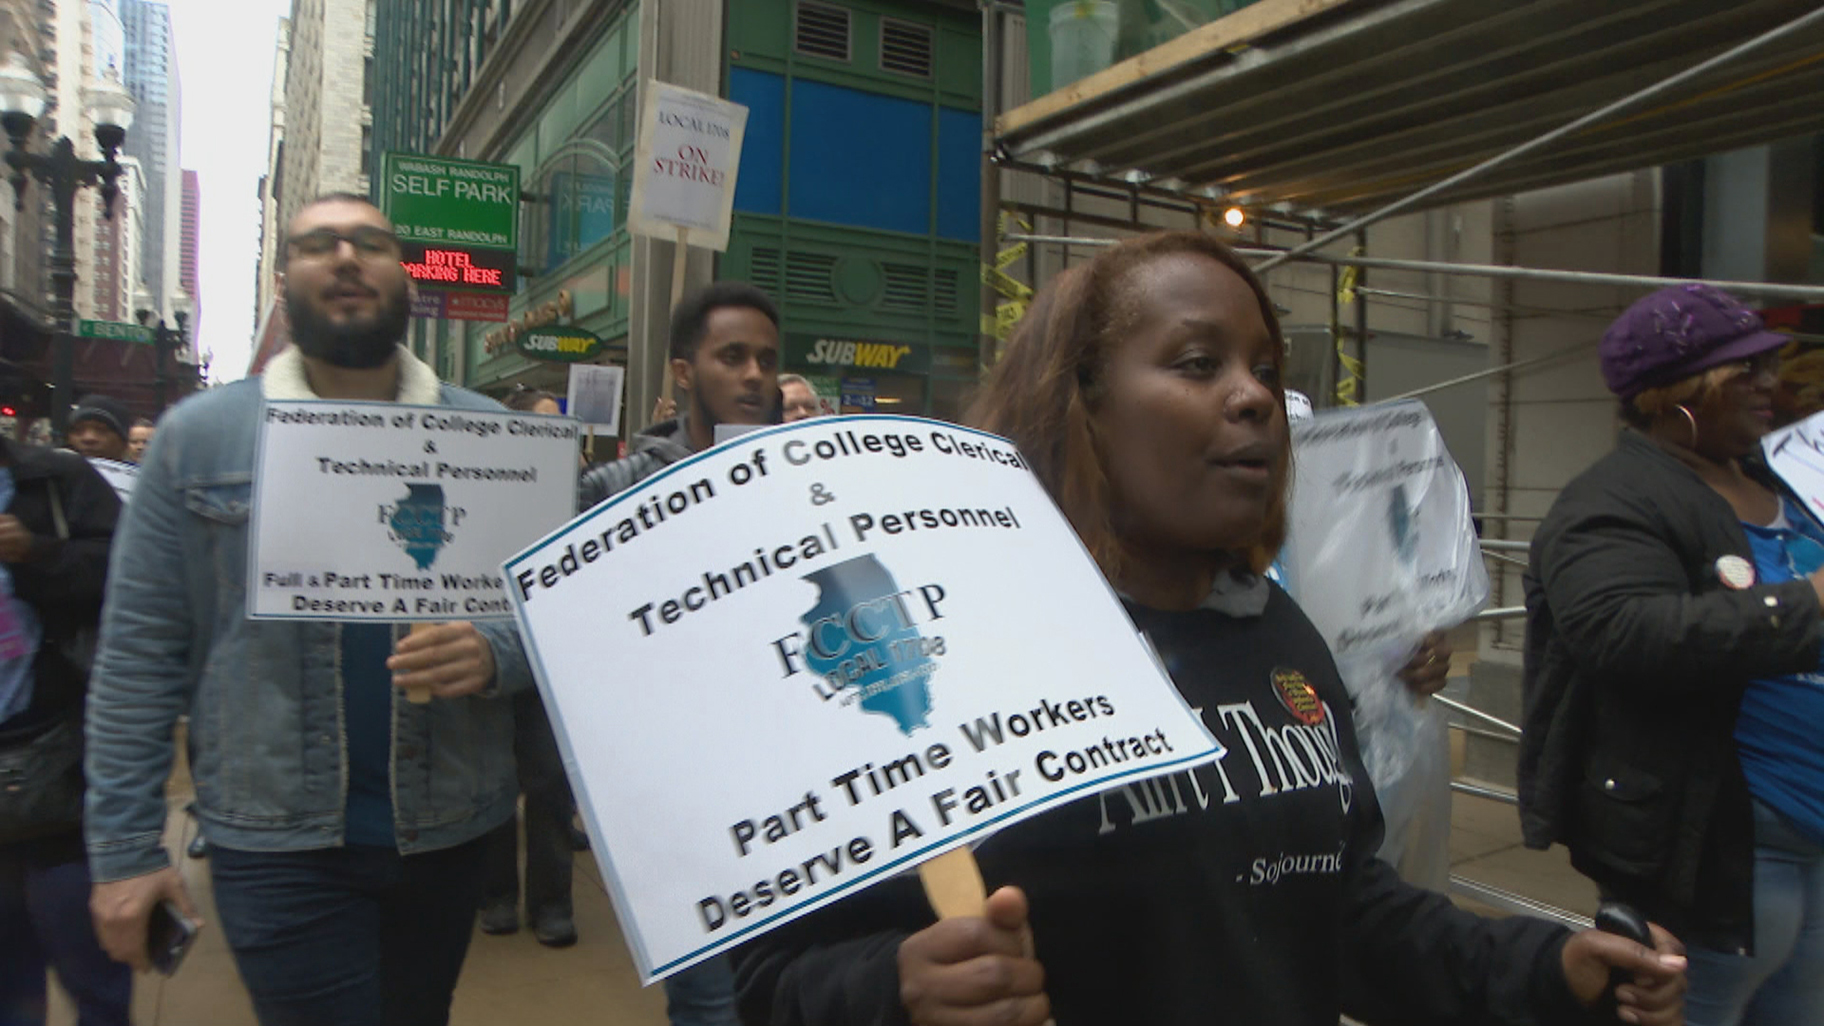 City Colleges of Chicago employees march downtown on Wednesday, May 1, 2019. They are demanding a fair contract. (WTTW News)